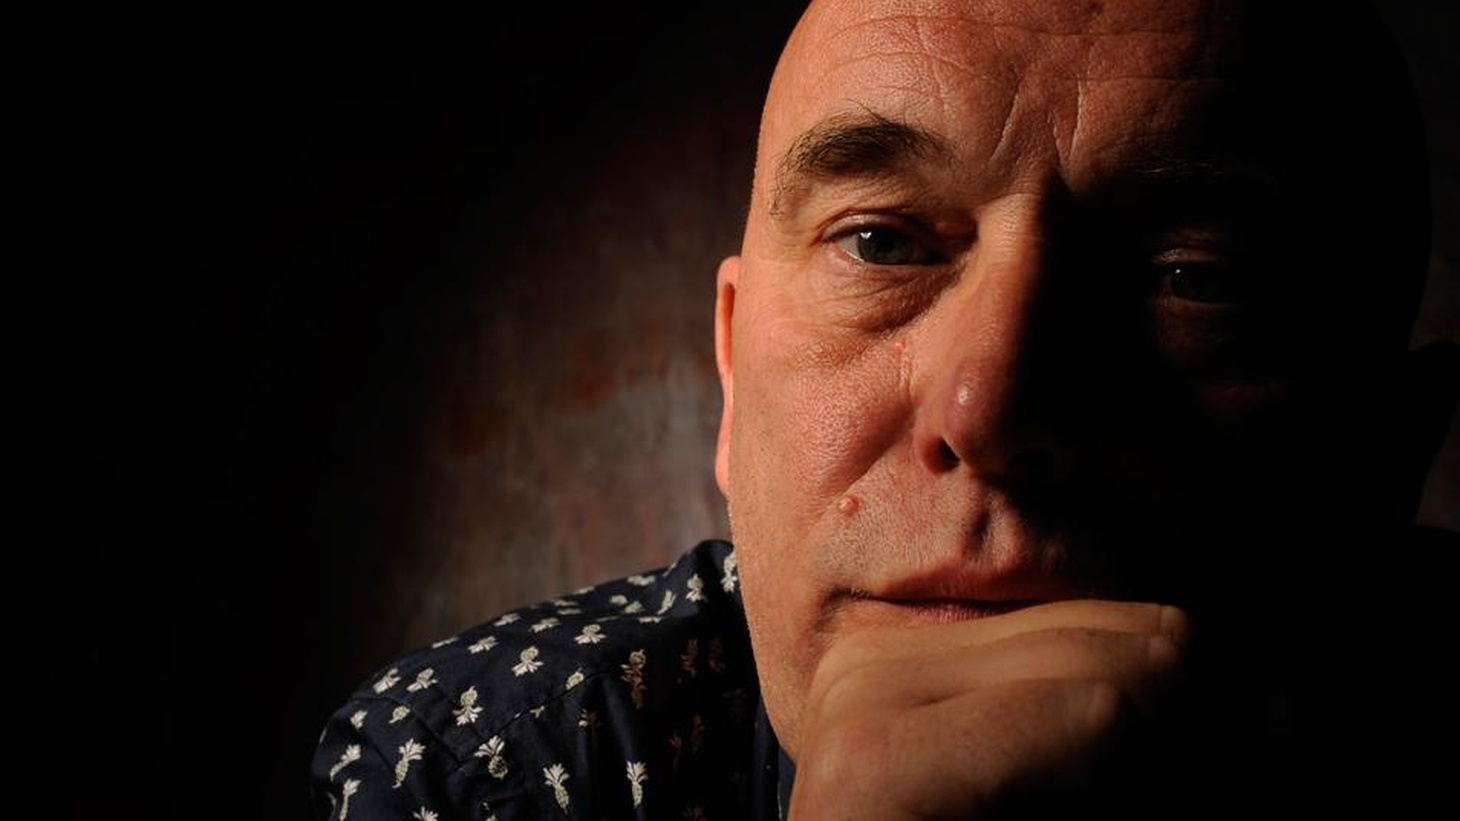 Adrian Sherwood is known for his groundbreaking production work with Nine Inch Nails and Lee 'Scratch' Perry. His solo work is prolific, grounded in a bass-driven sound.